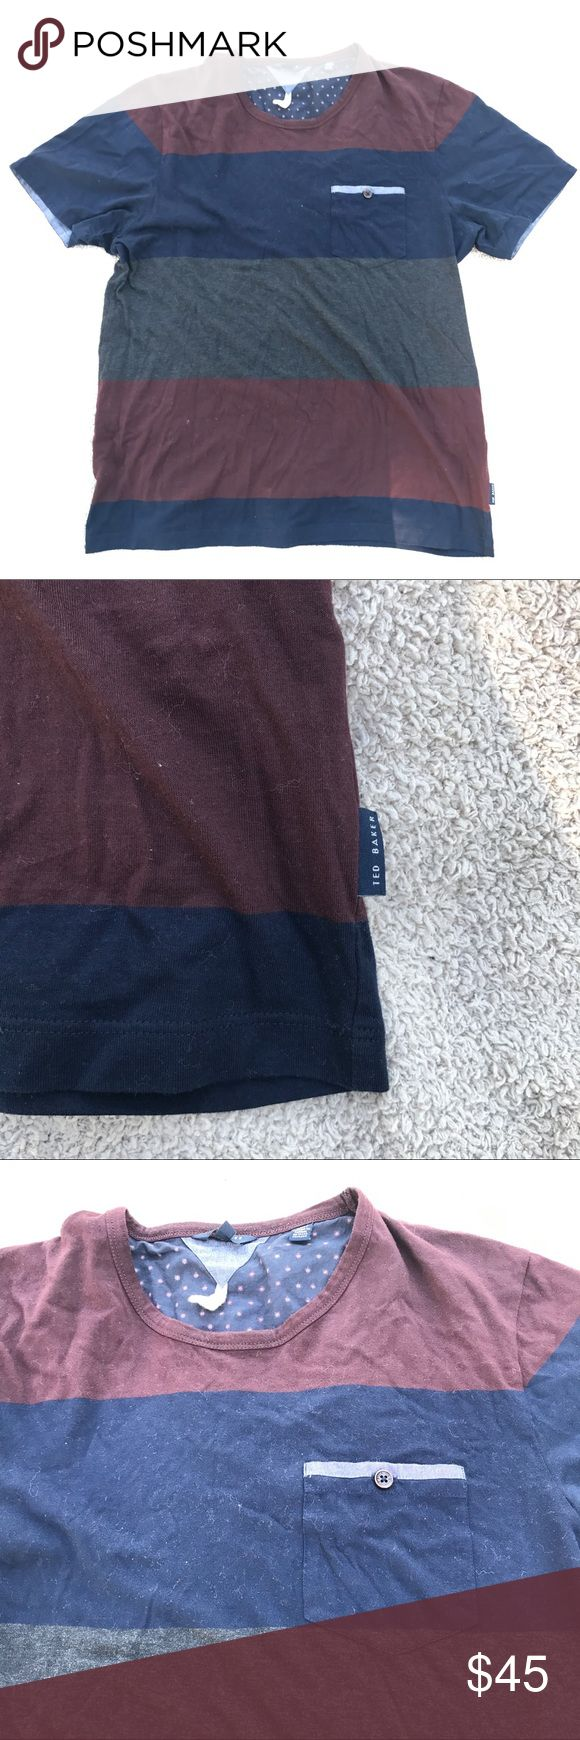 Ted Baker Color Block Tee Shirt Like New  Gently worn  No holes, rips or stains.  Open to offers  Bundle discounts available  Size 4 = Large Ted Baker Shirts Tees - Short Sleeve